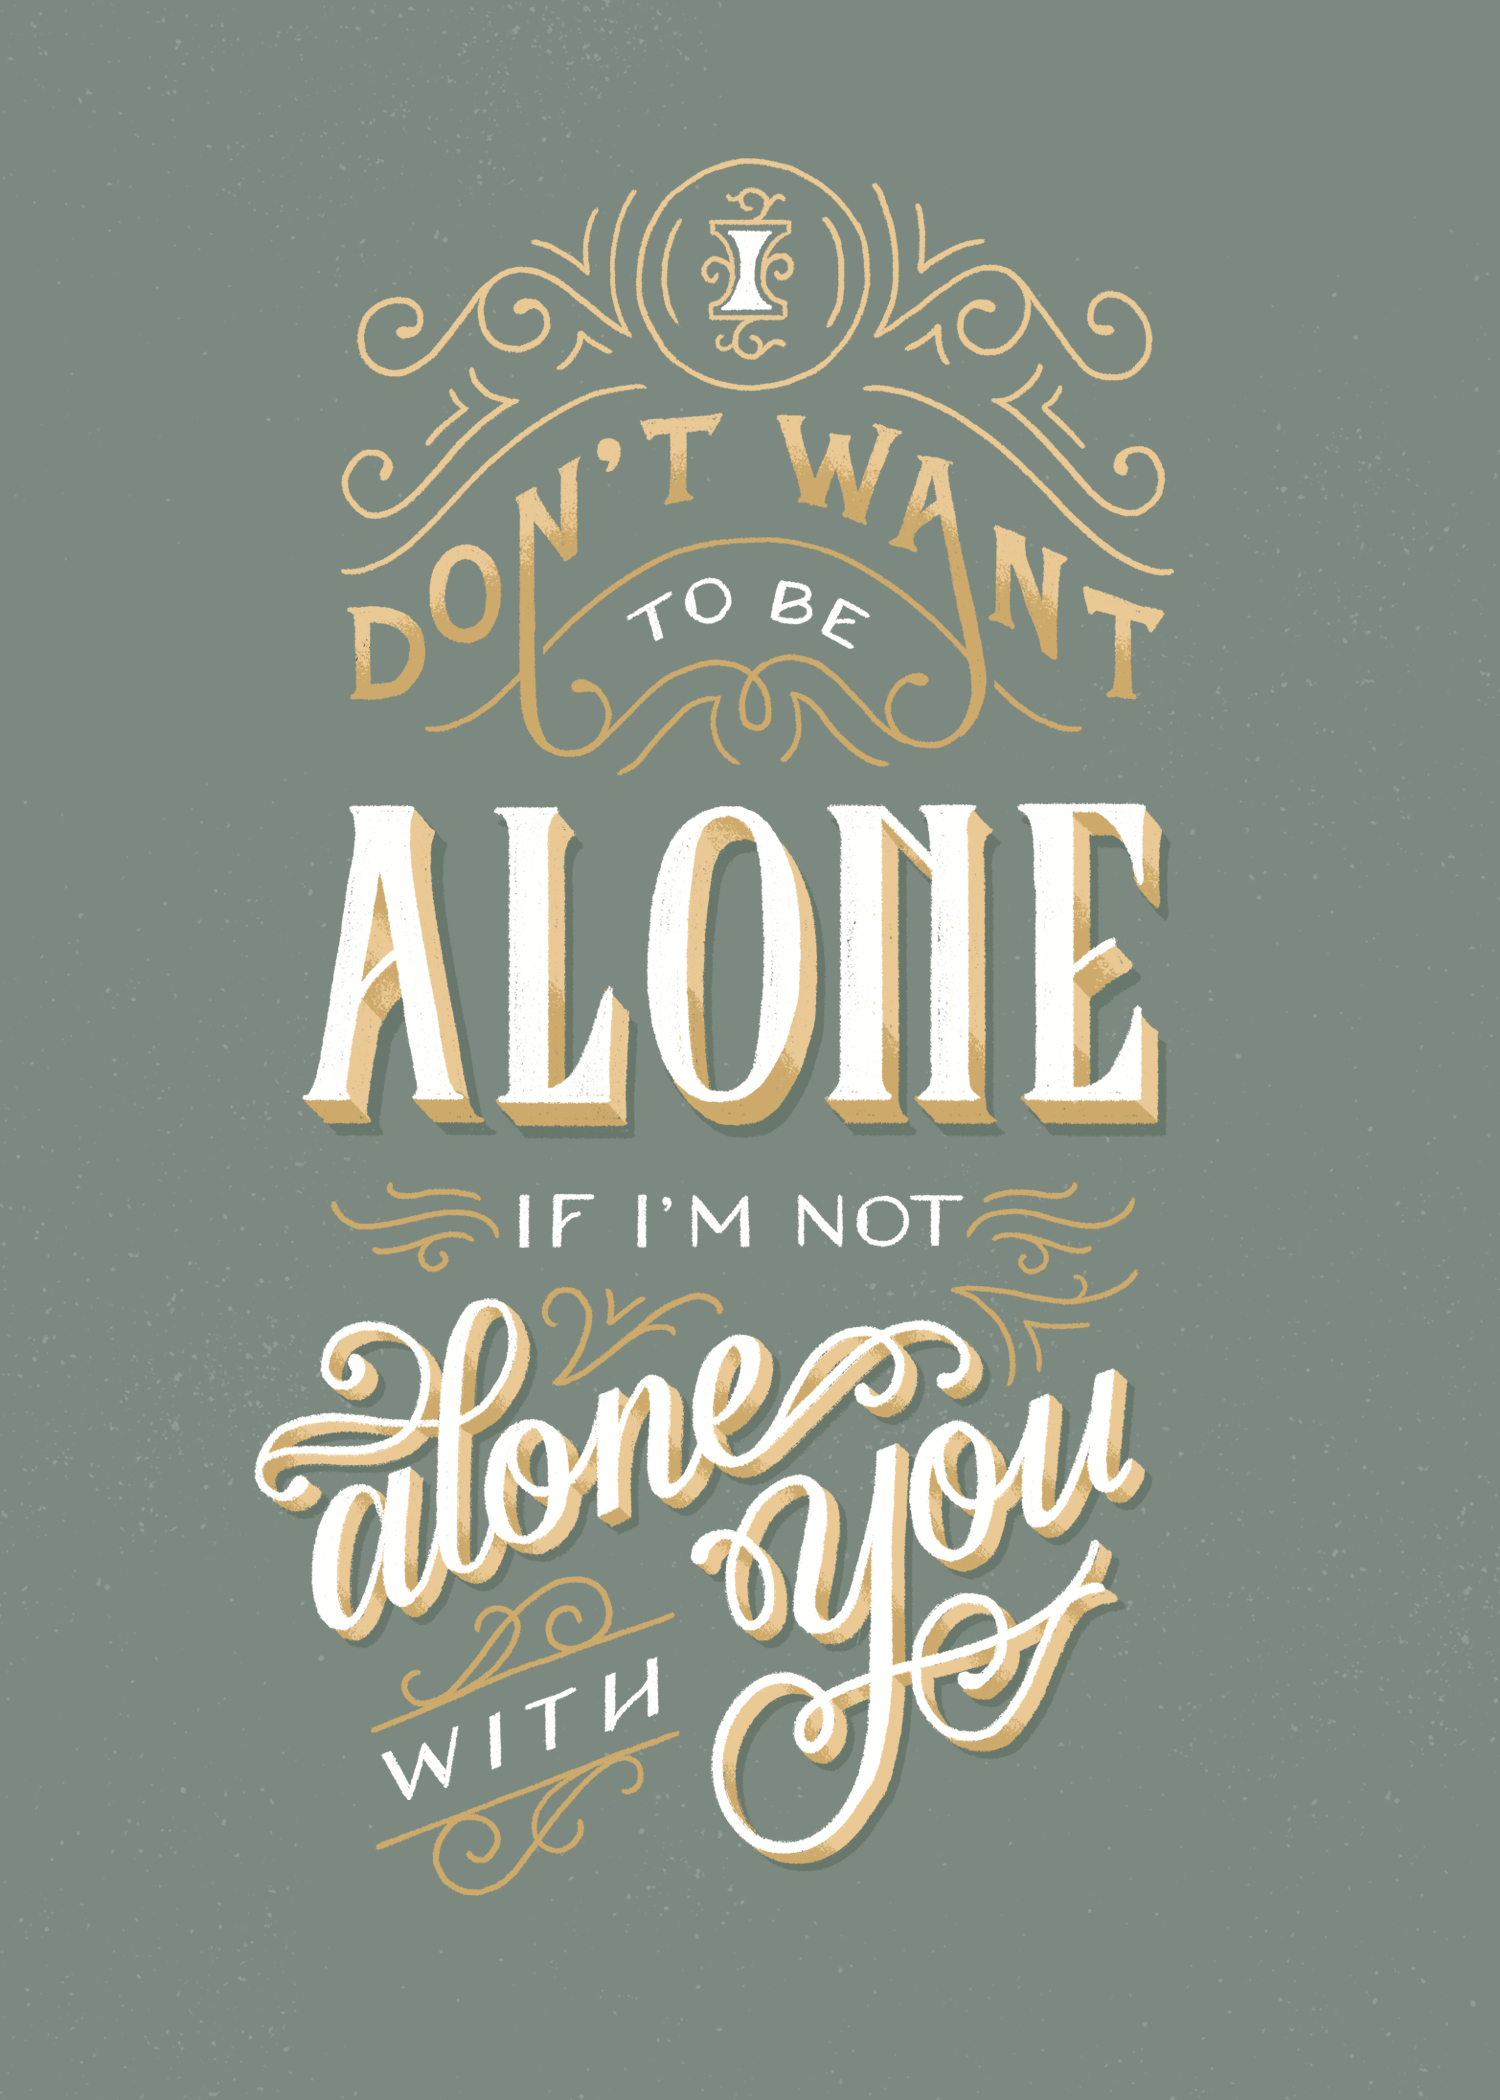 Hand-Lettered_Lyric_5x7_01A.jpg